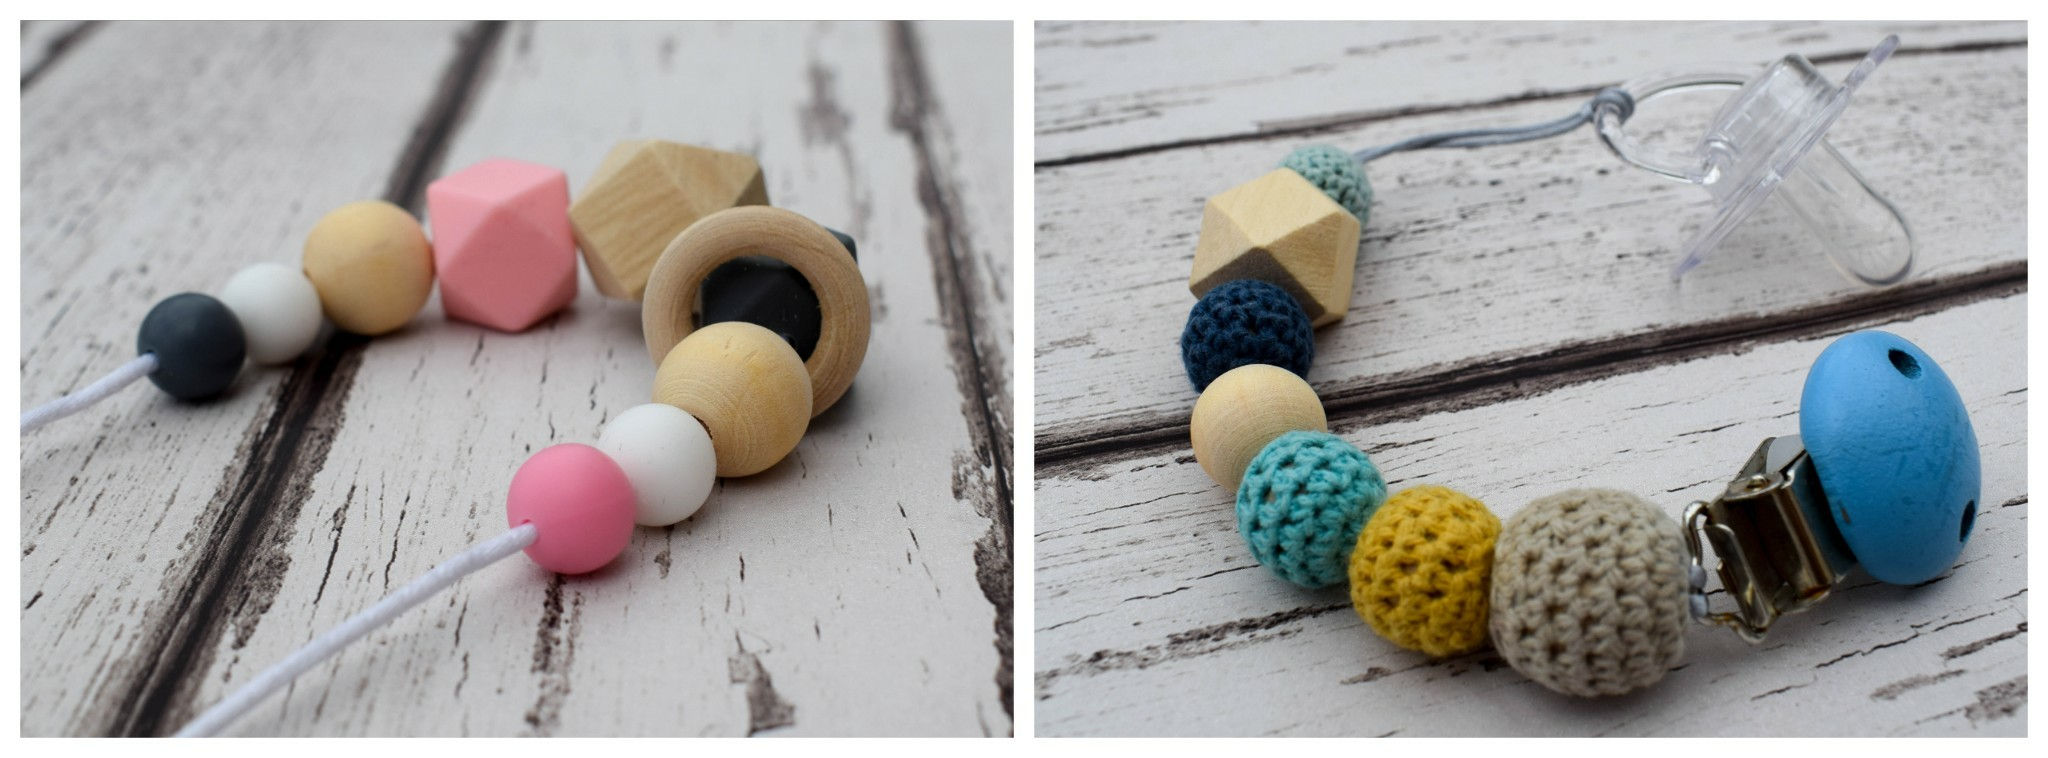 teething products from Peek a baby gifts